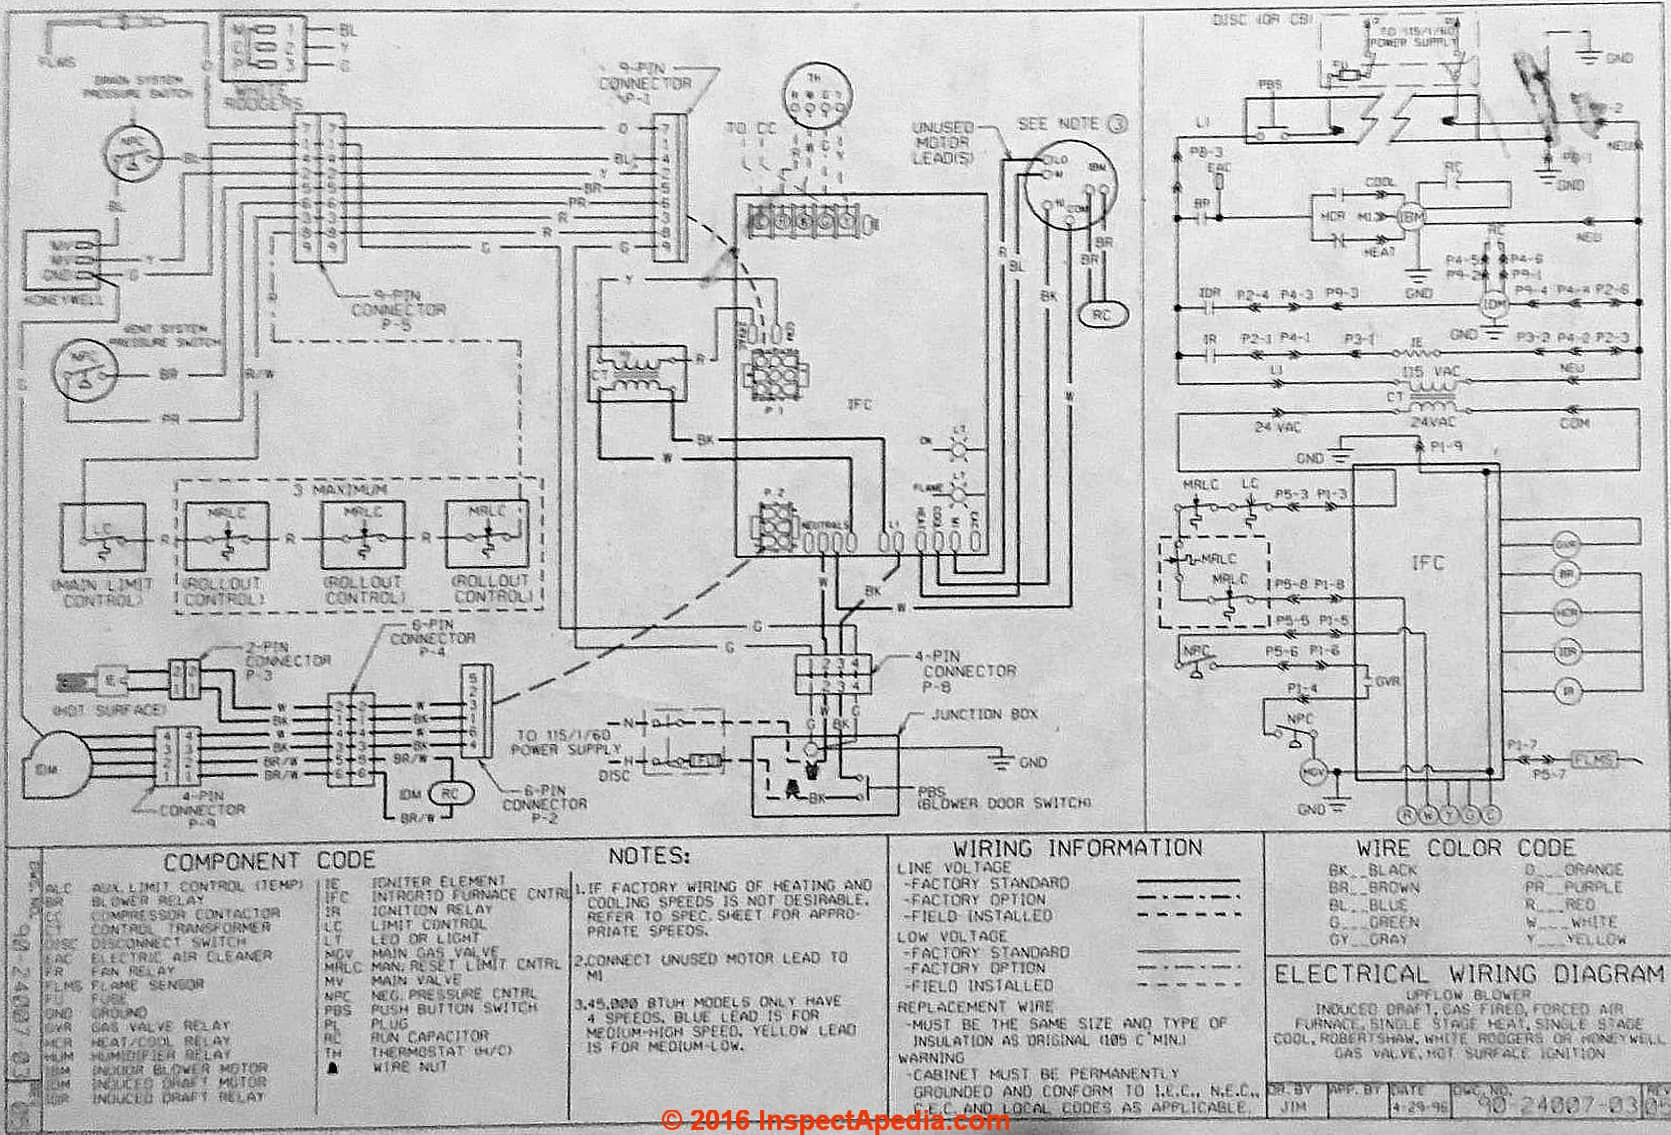 dometic air conditioner wiring diagram #15, wiring, dometic air conditioner wiring diagram